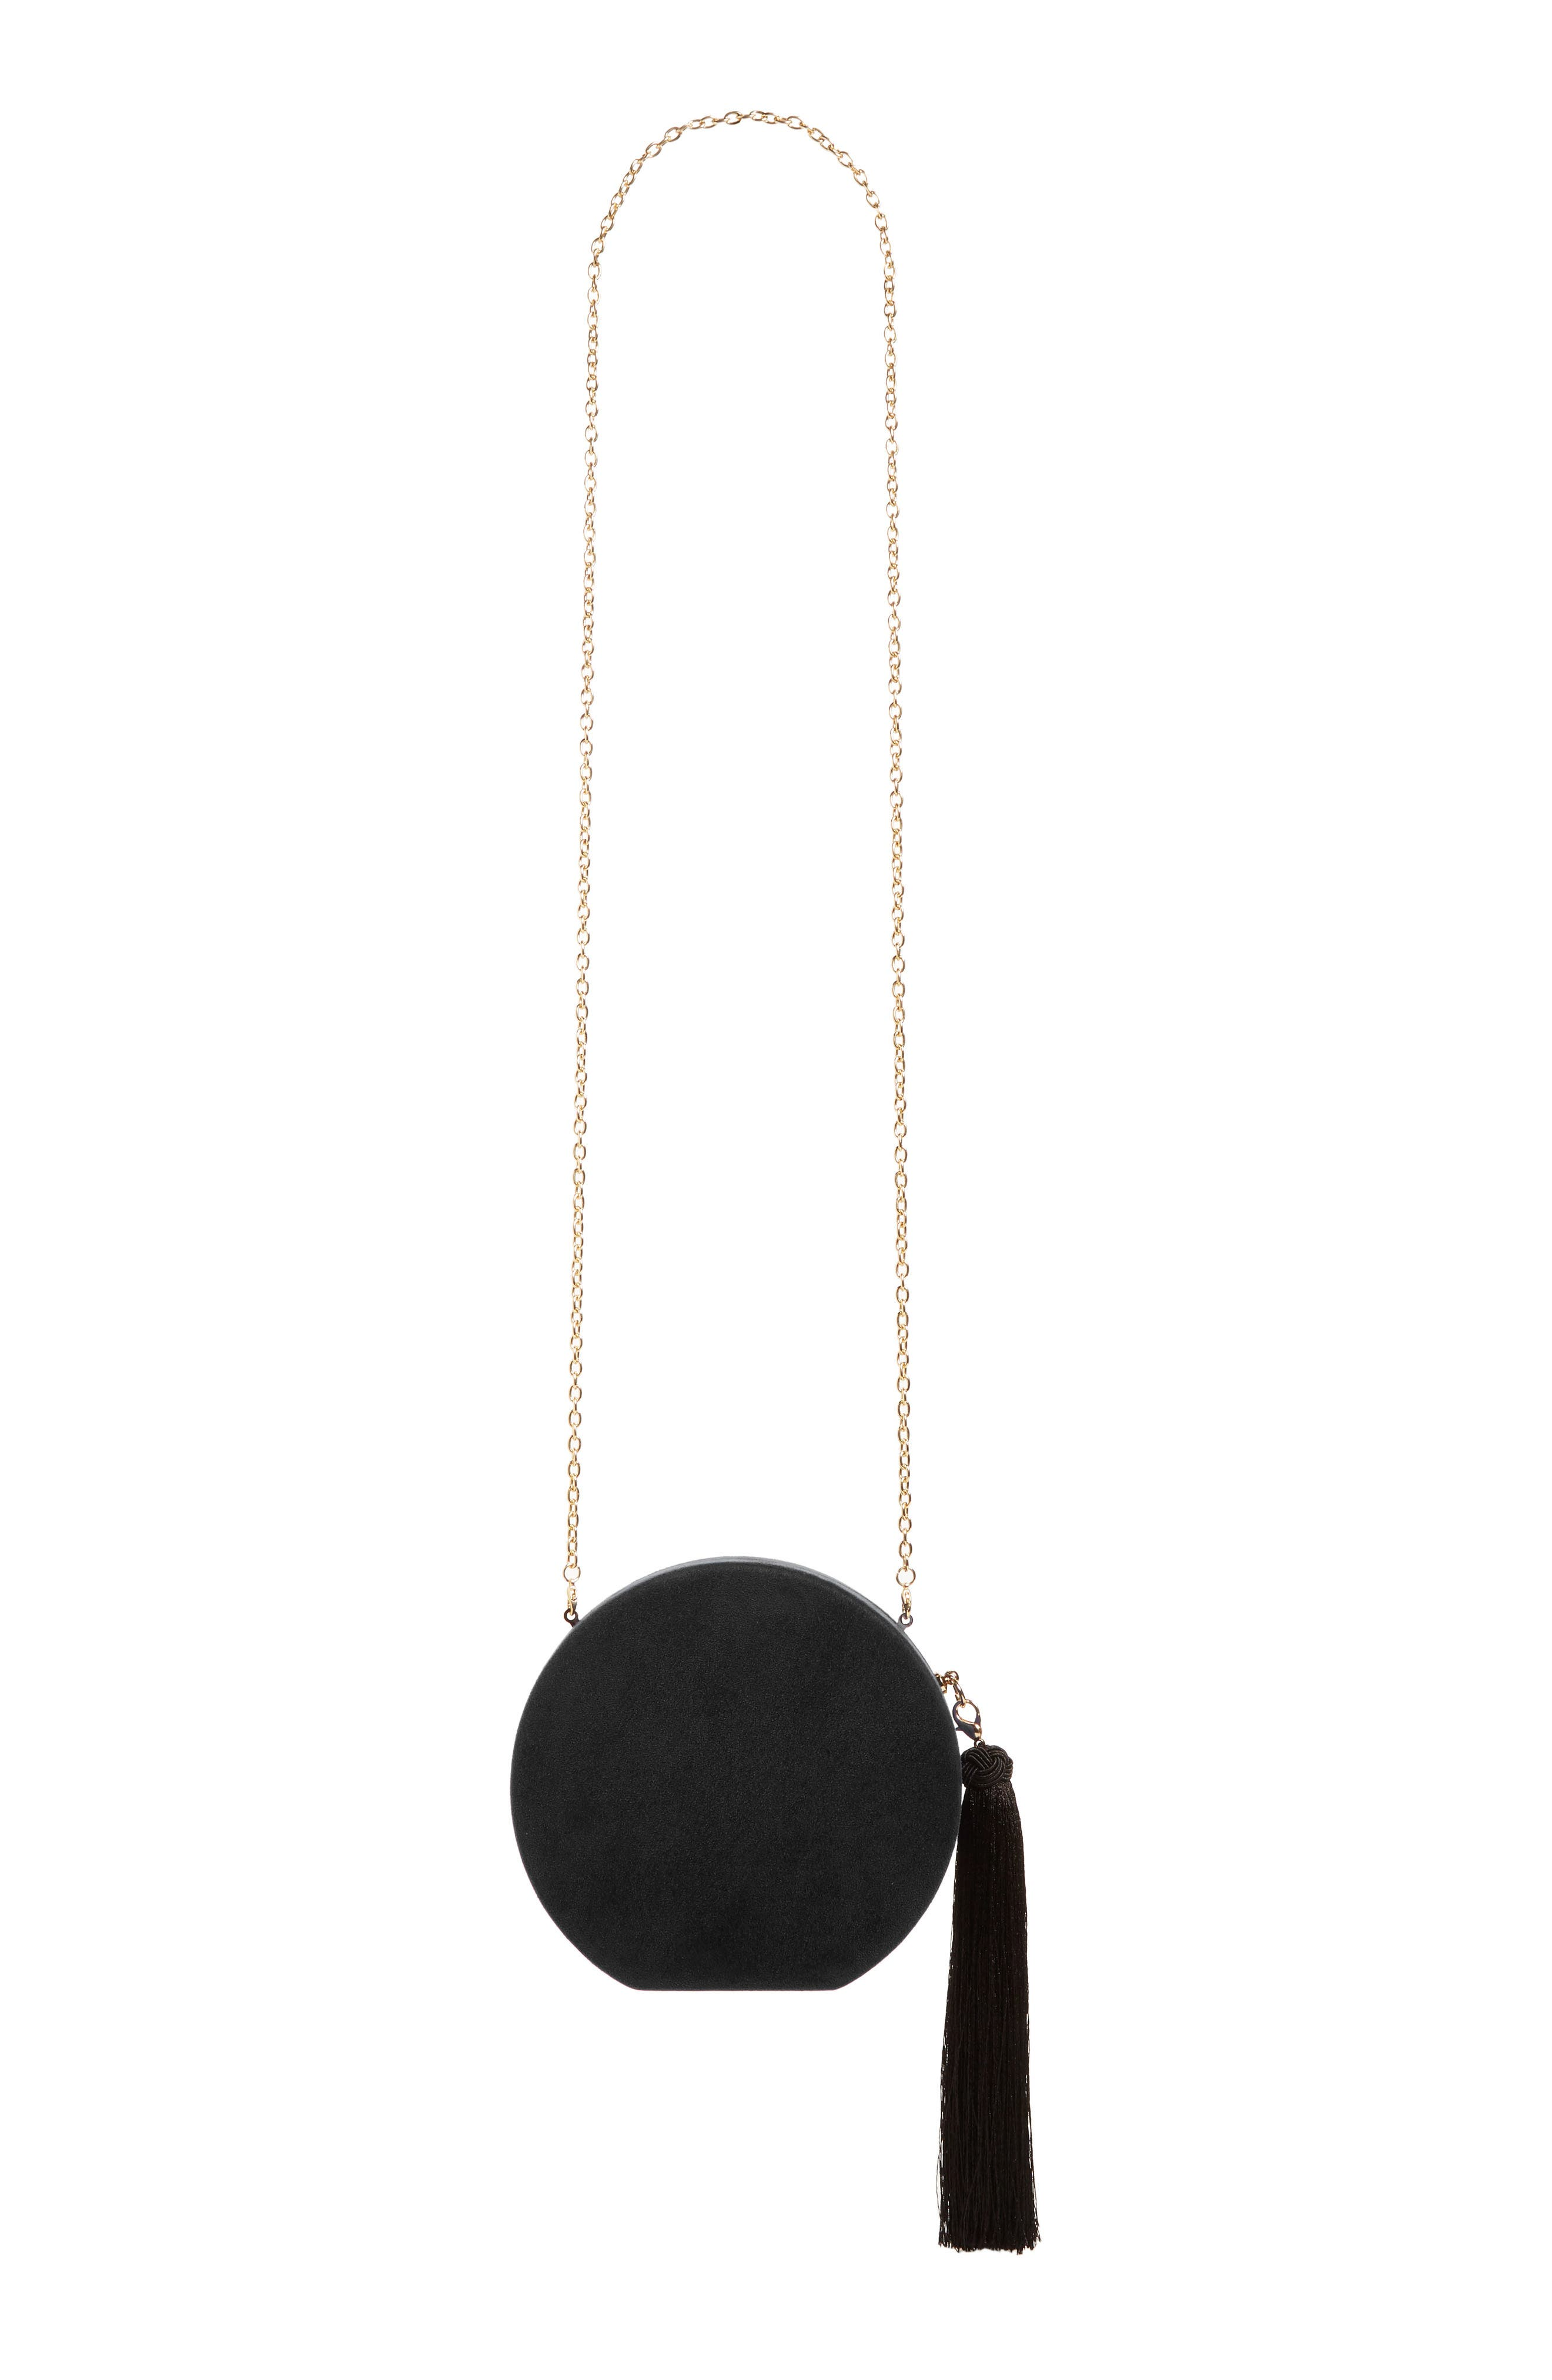 Couture Round Tassel Clutch,                             Alternate thumbnail 3, color,                             001